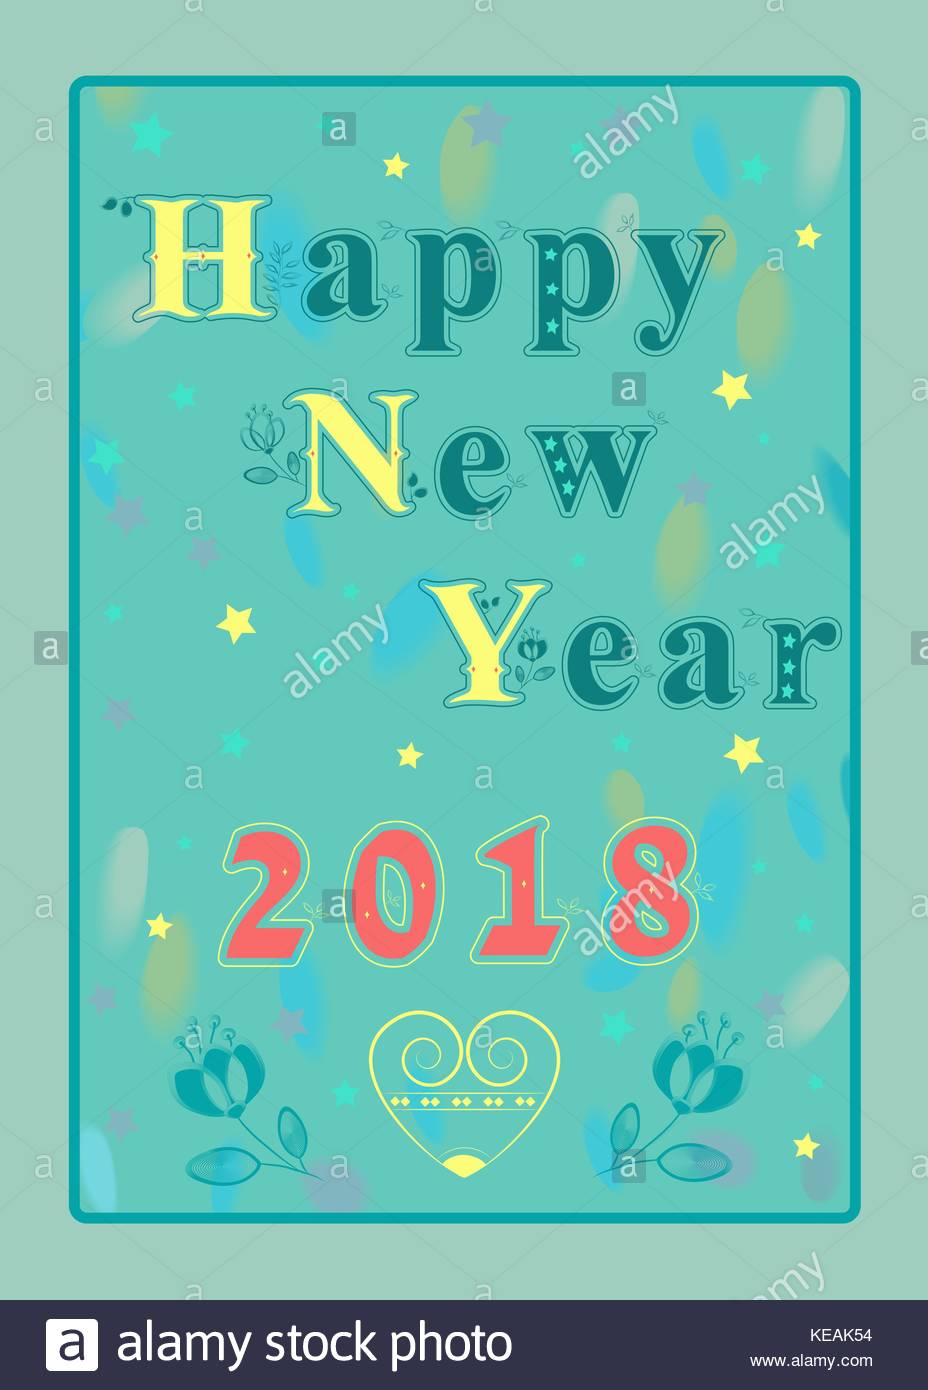 happy new year 2018 artistic graceful floral font watercolor background and vintage yellow heart vector illustration